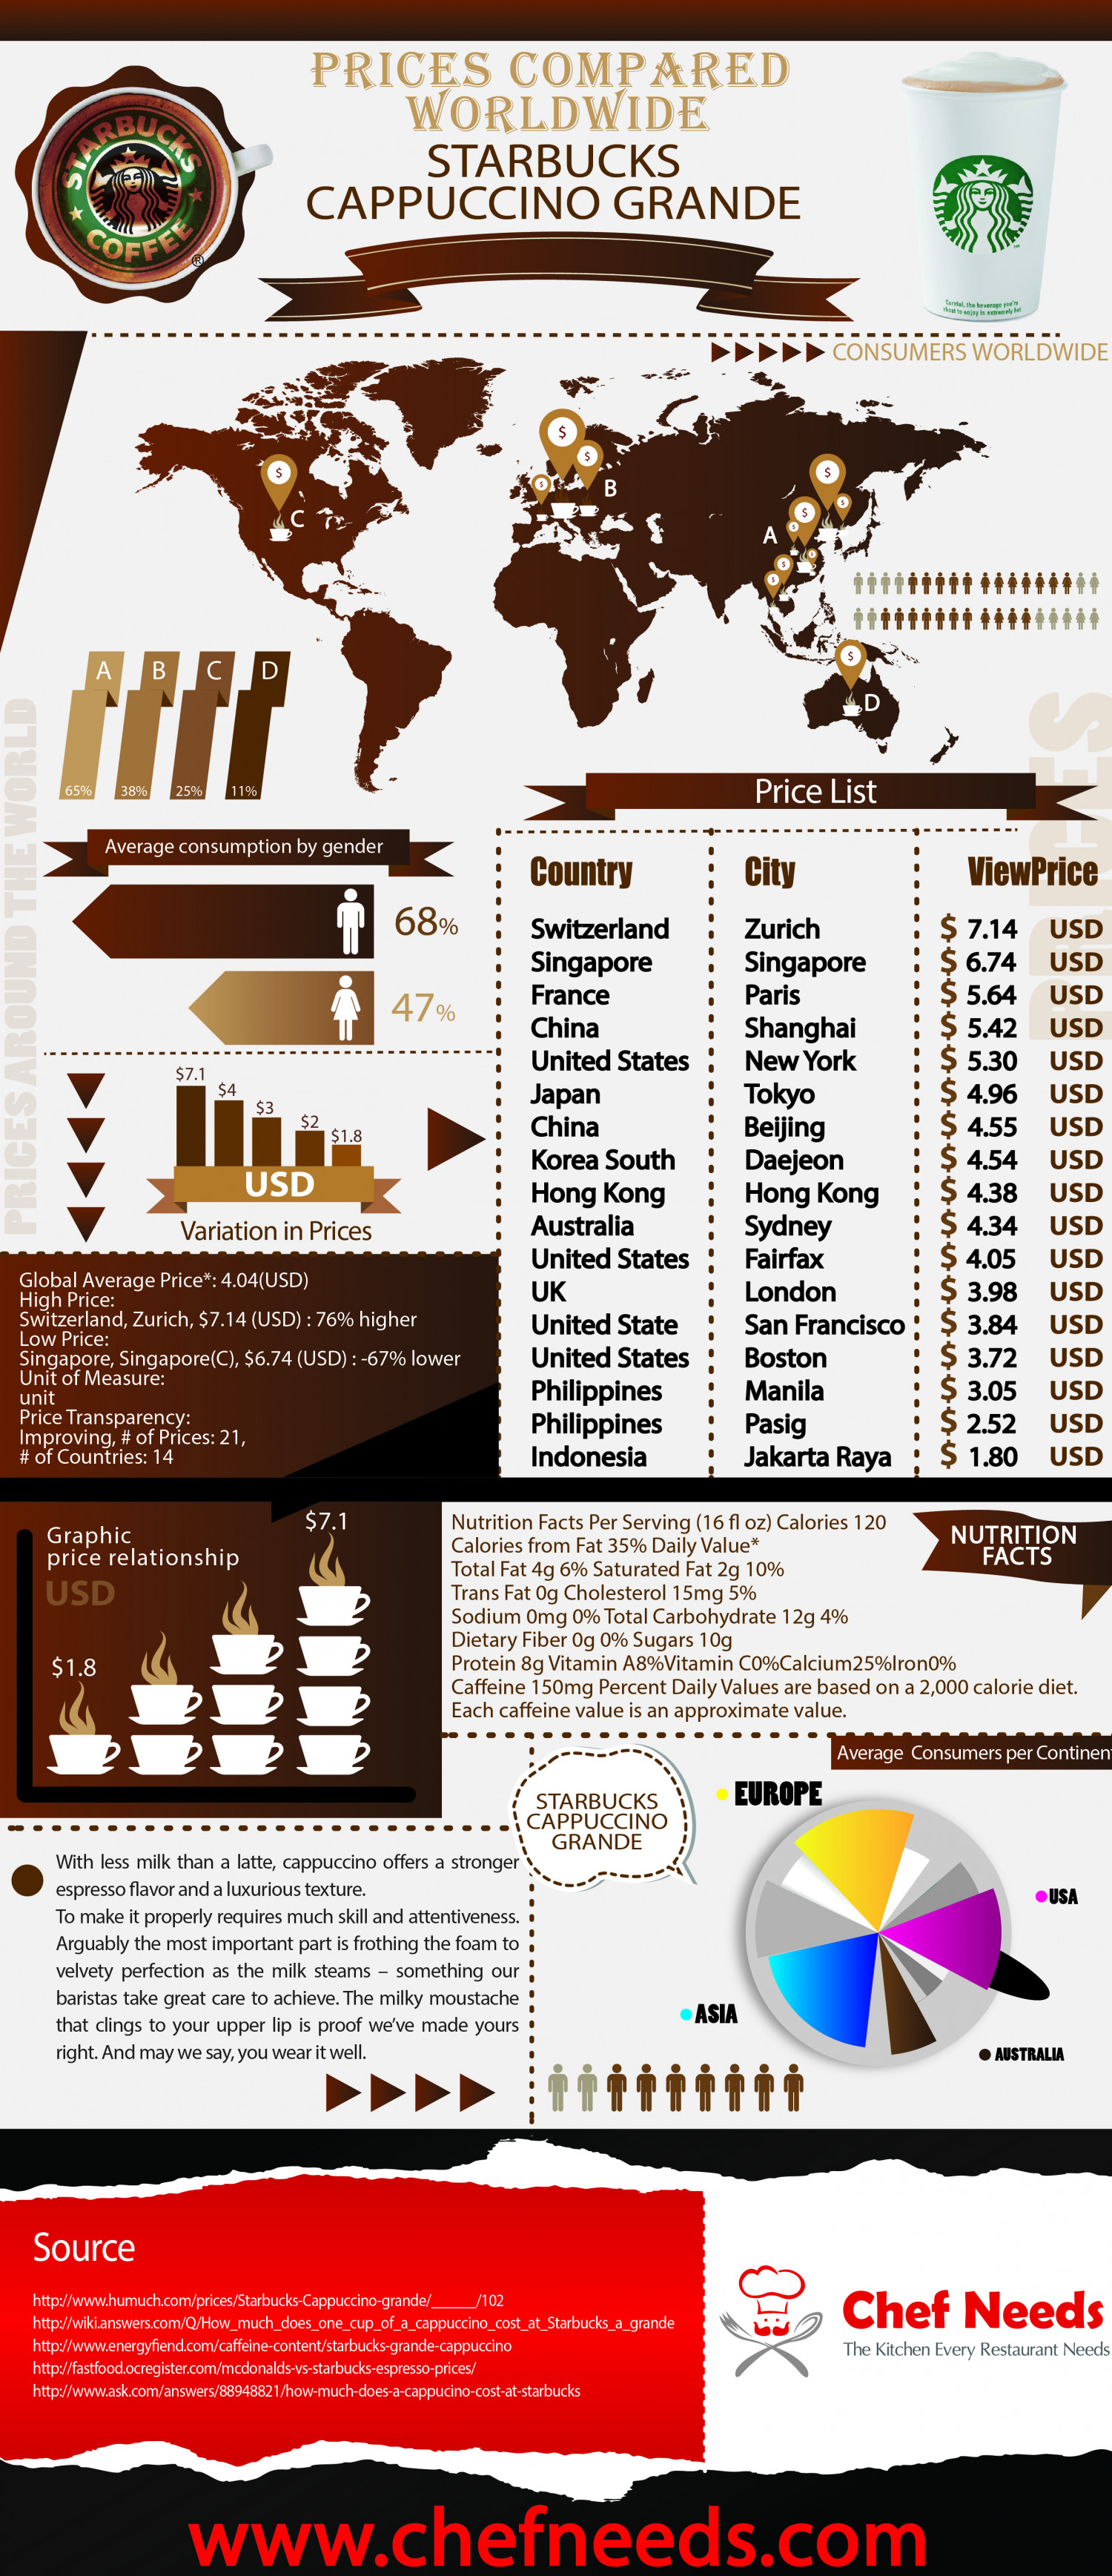 Prices Compared Worldwide Starbucks Cappuccino Grande Infographic